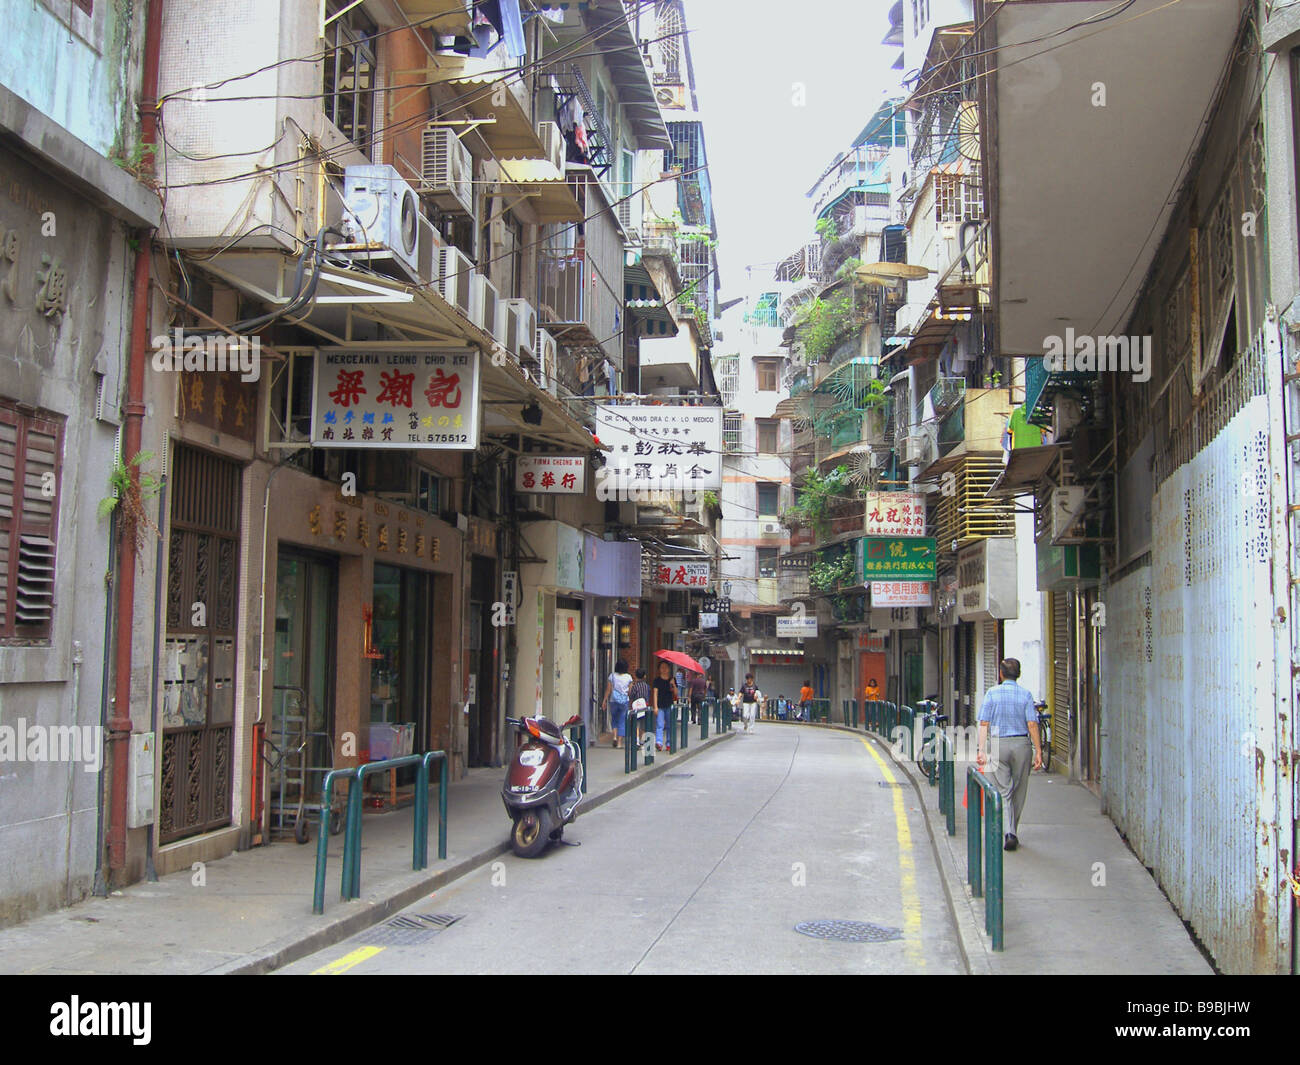 The old streets of Macao are a fantastic blend of the Chinese and Portuguese cultures - Stock Image